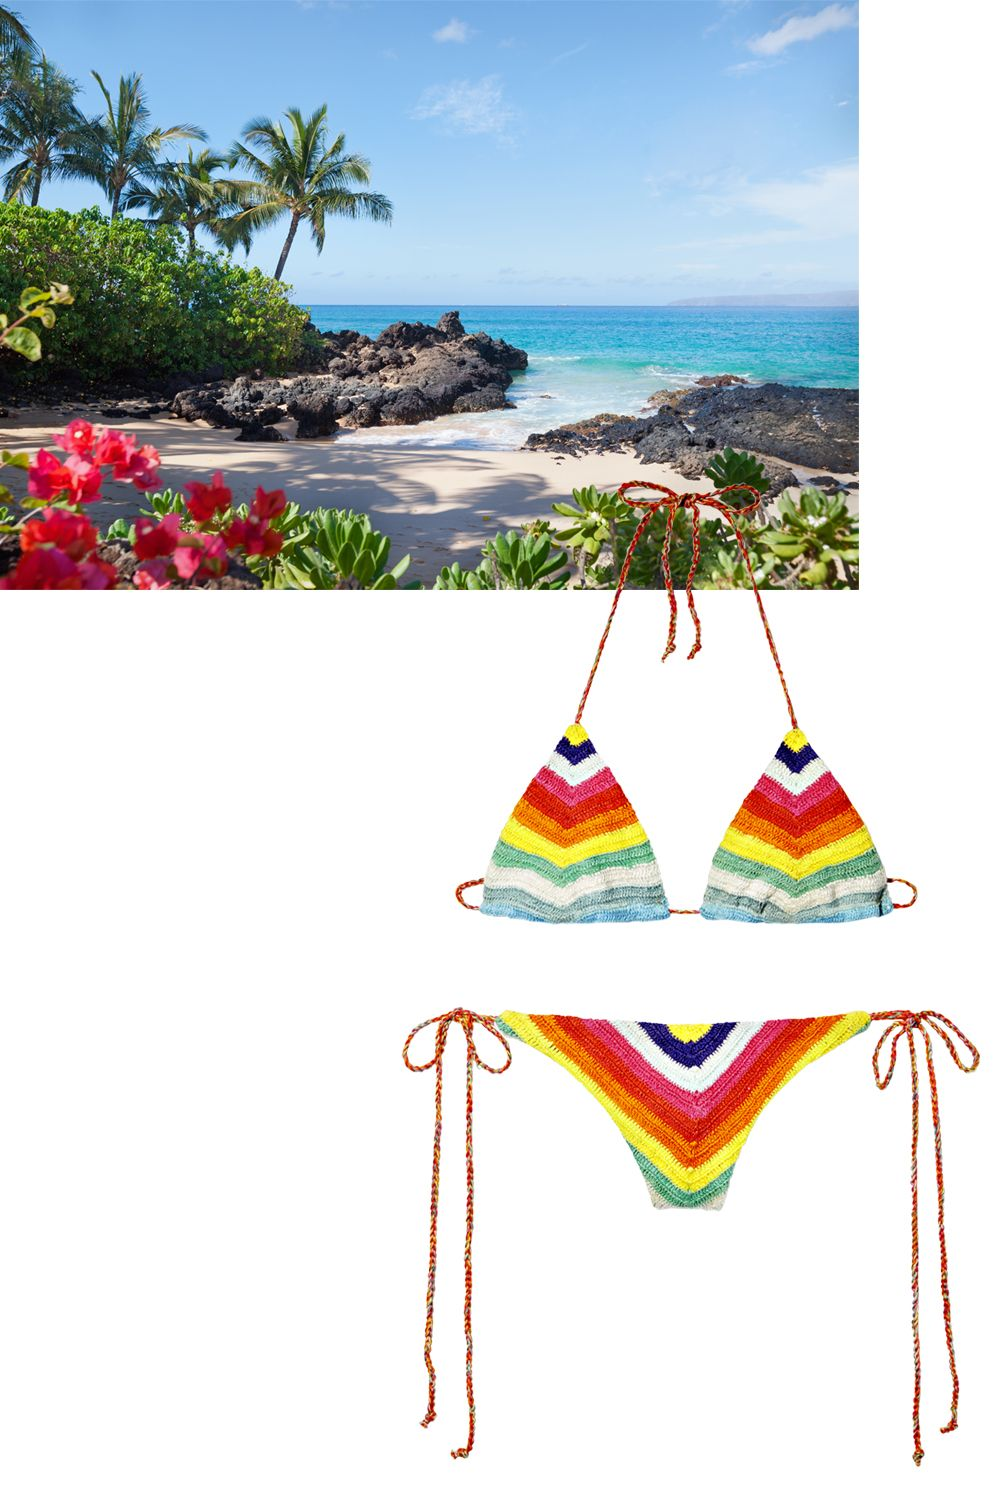 "<p><strong>Ideal vacation: </strong>Maui, by car or by helicopter.</p><p><strong>Workout routine: </strong>A combination of stretching, strength-training, and cardio.</p><p><strong><em>Mara Hoffman </em></strong><em> bikini top, $90, and bottom, $170,  <a href=""http://www.marahoffman.com/"">marahoffman.com</a></em><span class=""redactor-invisible-space""><em>; Maui</em></span><br></p>"